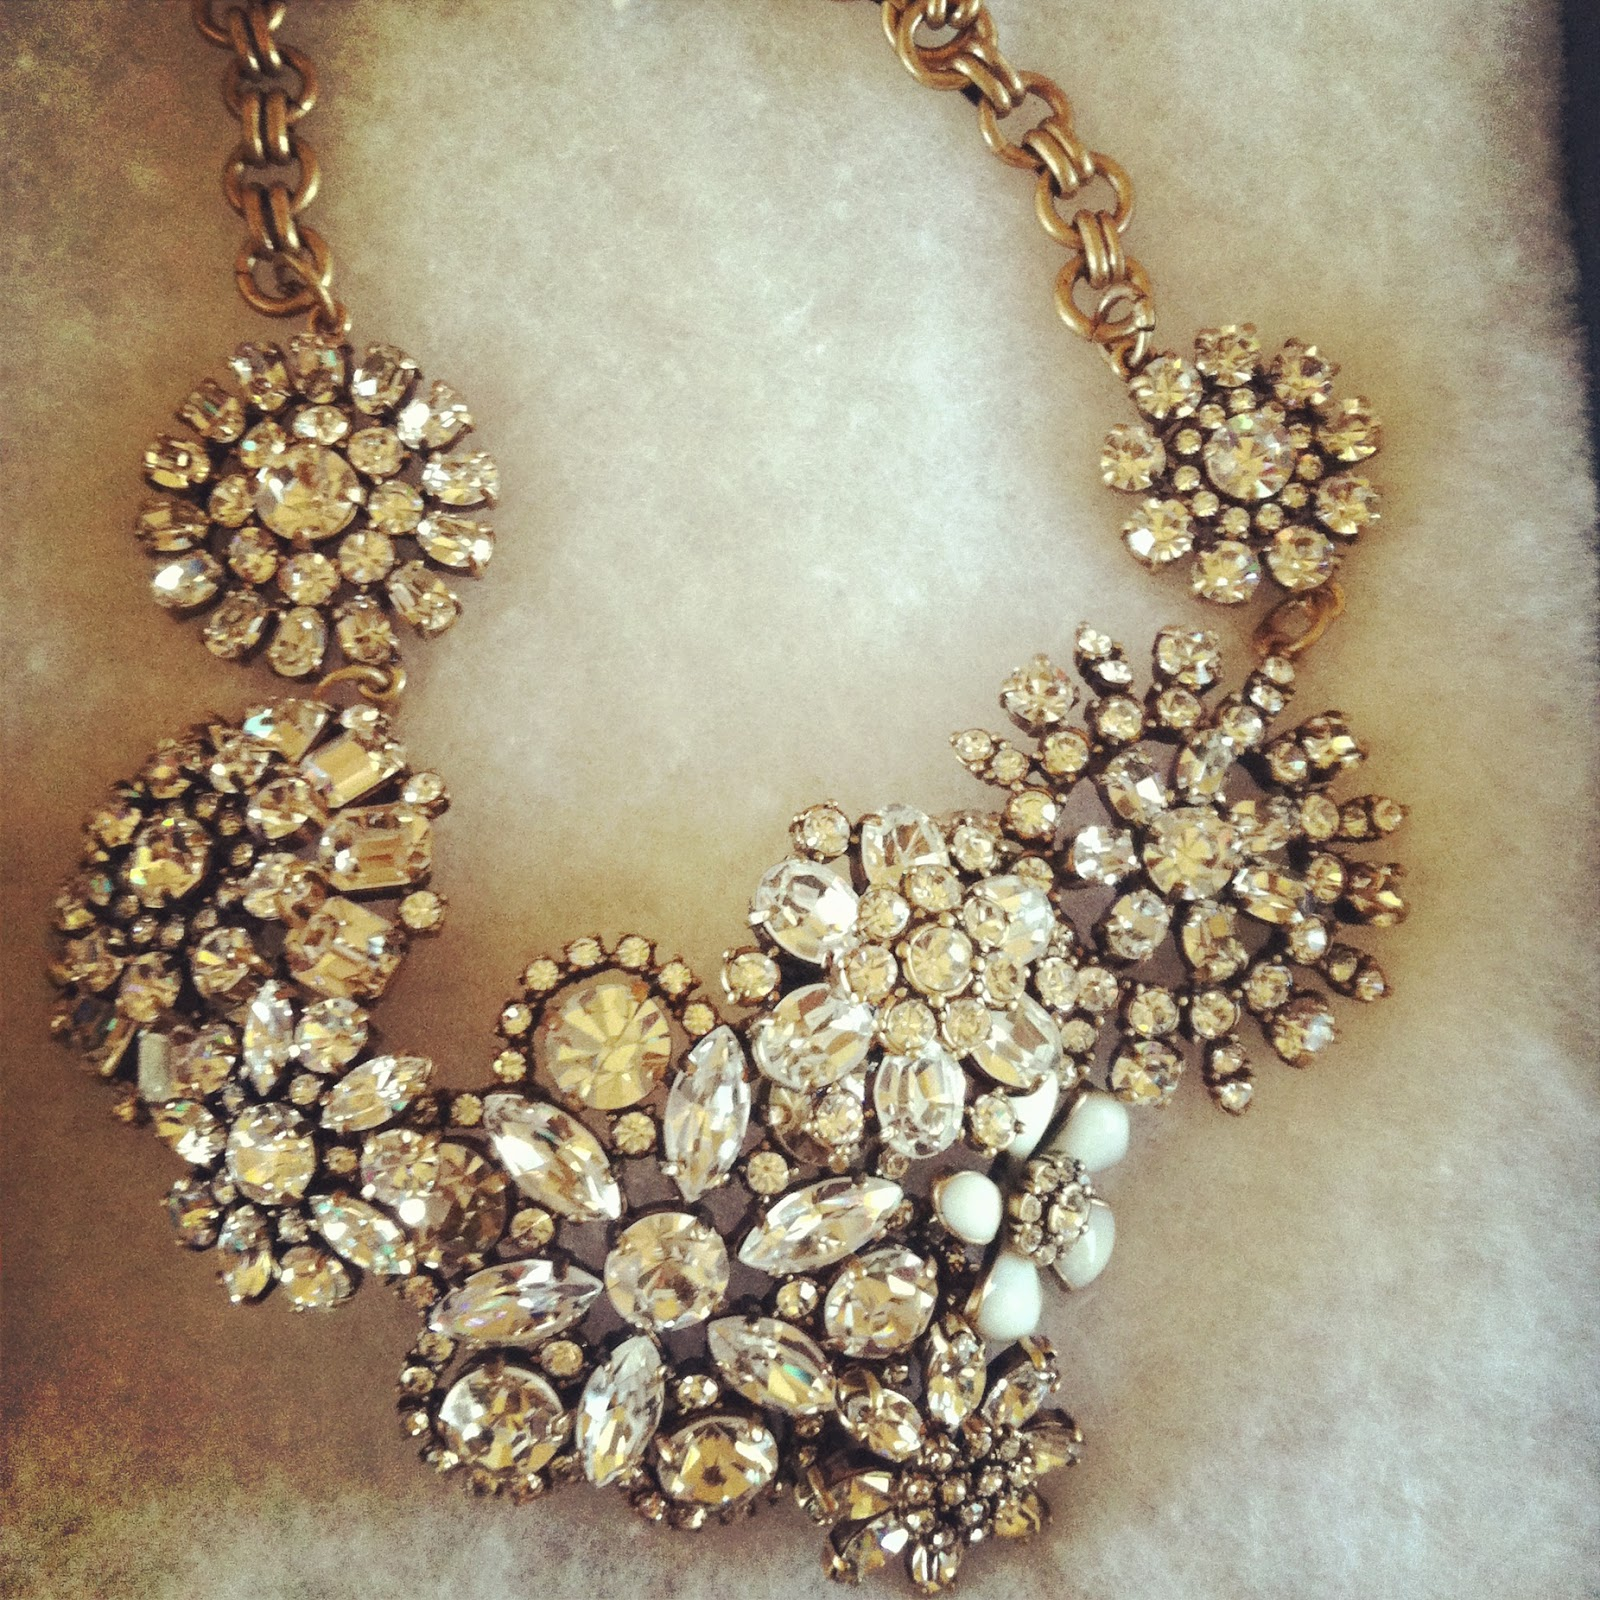 jcrewismyfavstore J Crew Flower Lattice Necklace Crystal and Crystal Color